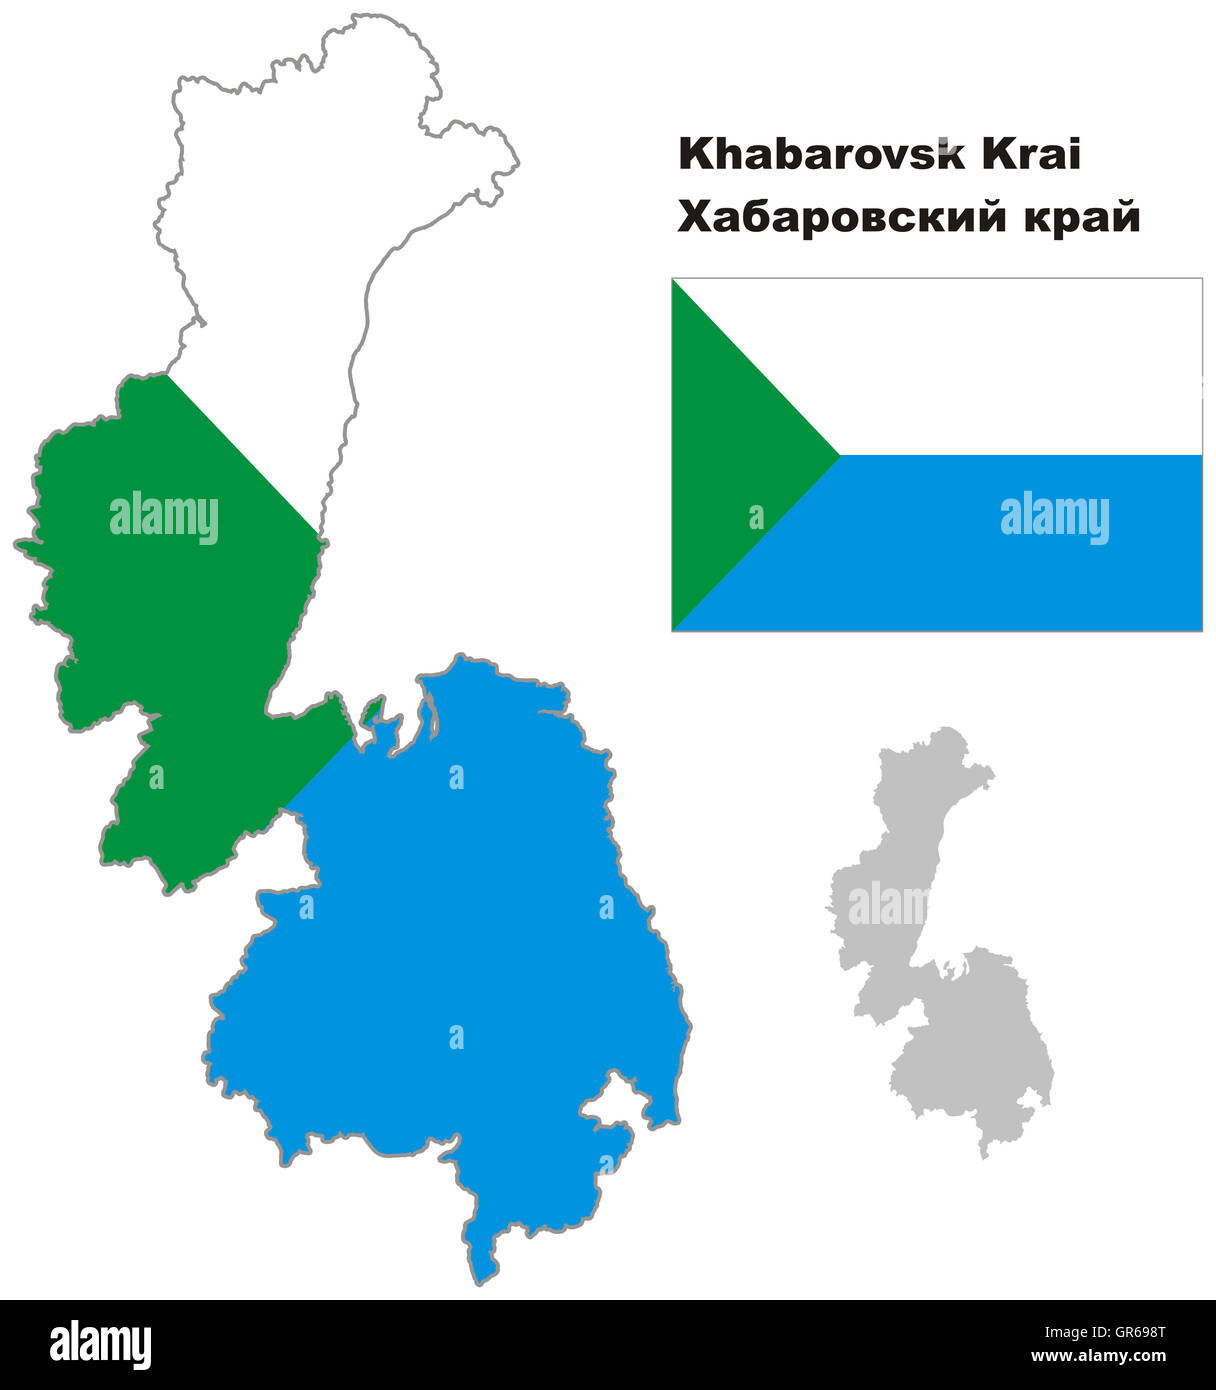 In the Khabarovsk Territory, the Liberal Democratic Party of Russia destroyed the United Russia party 58